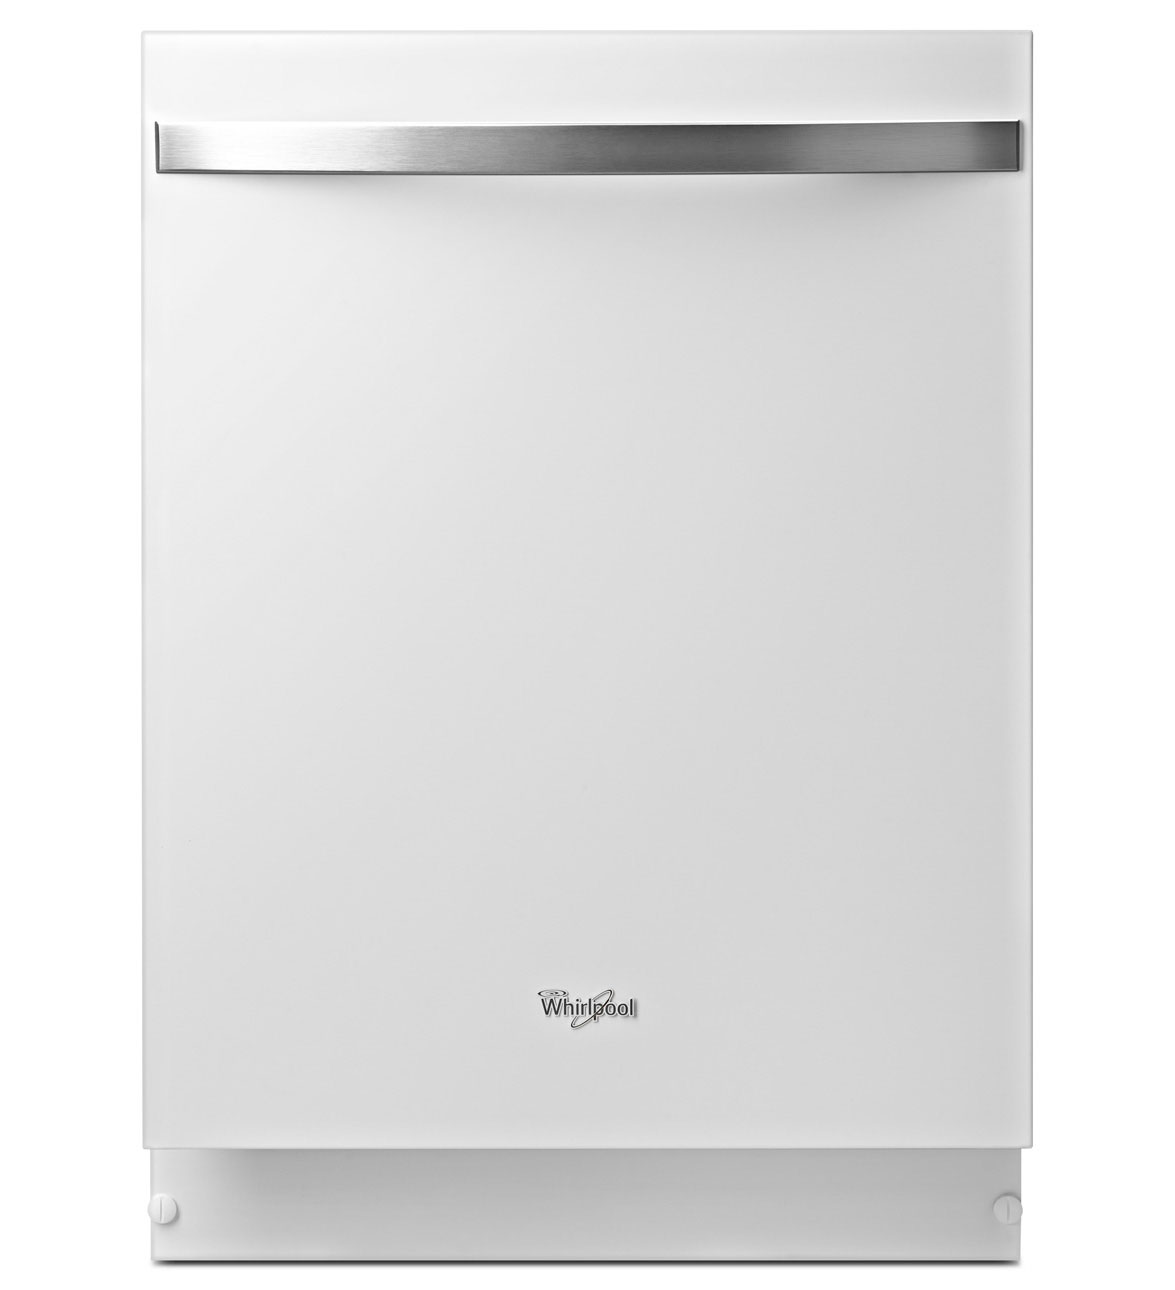 Whirlpool white ice line - Appliance News